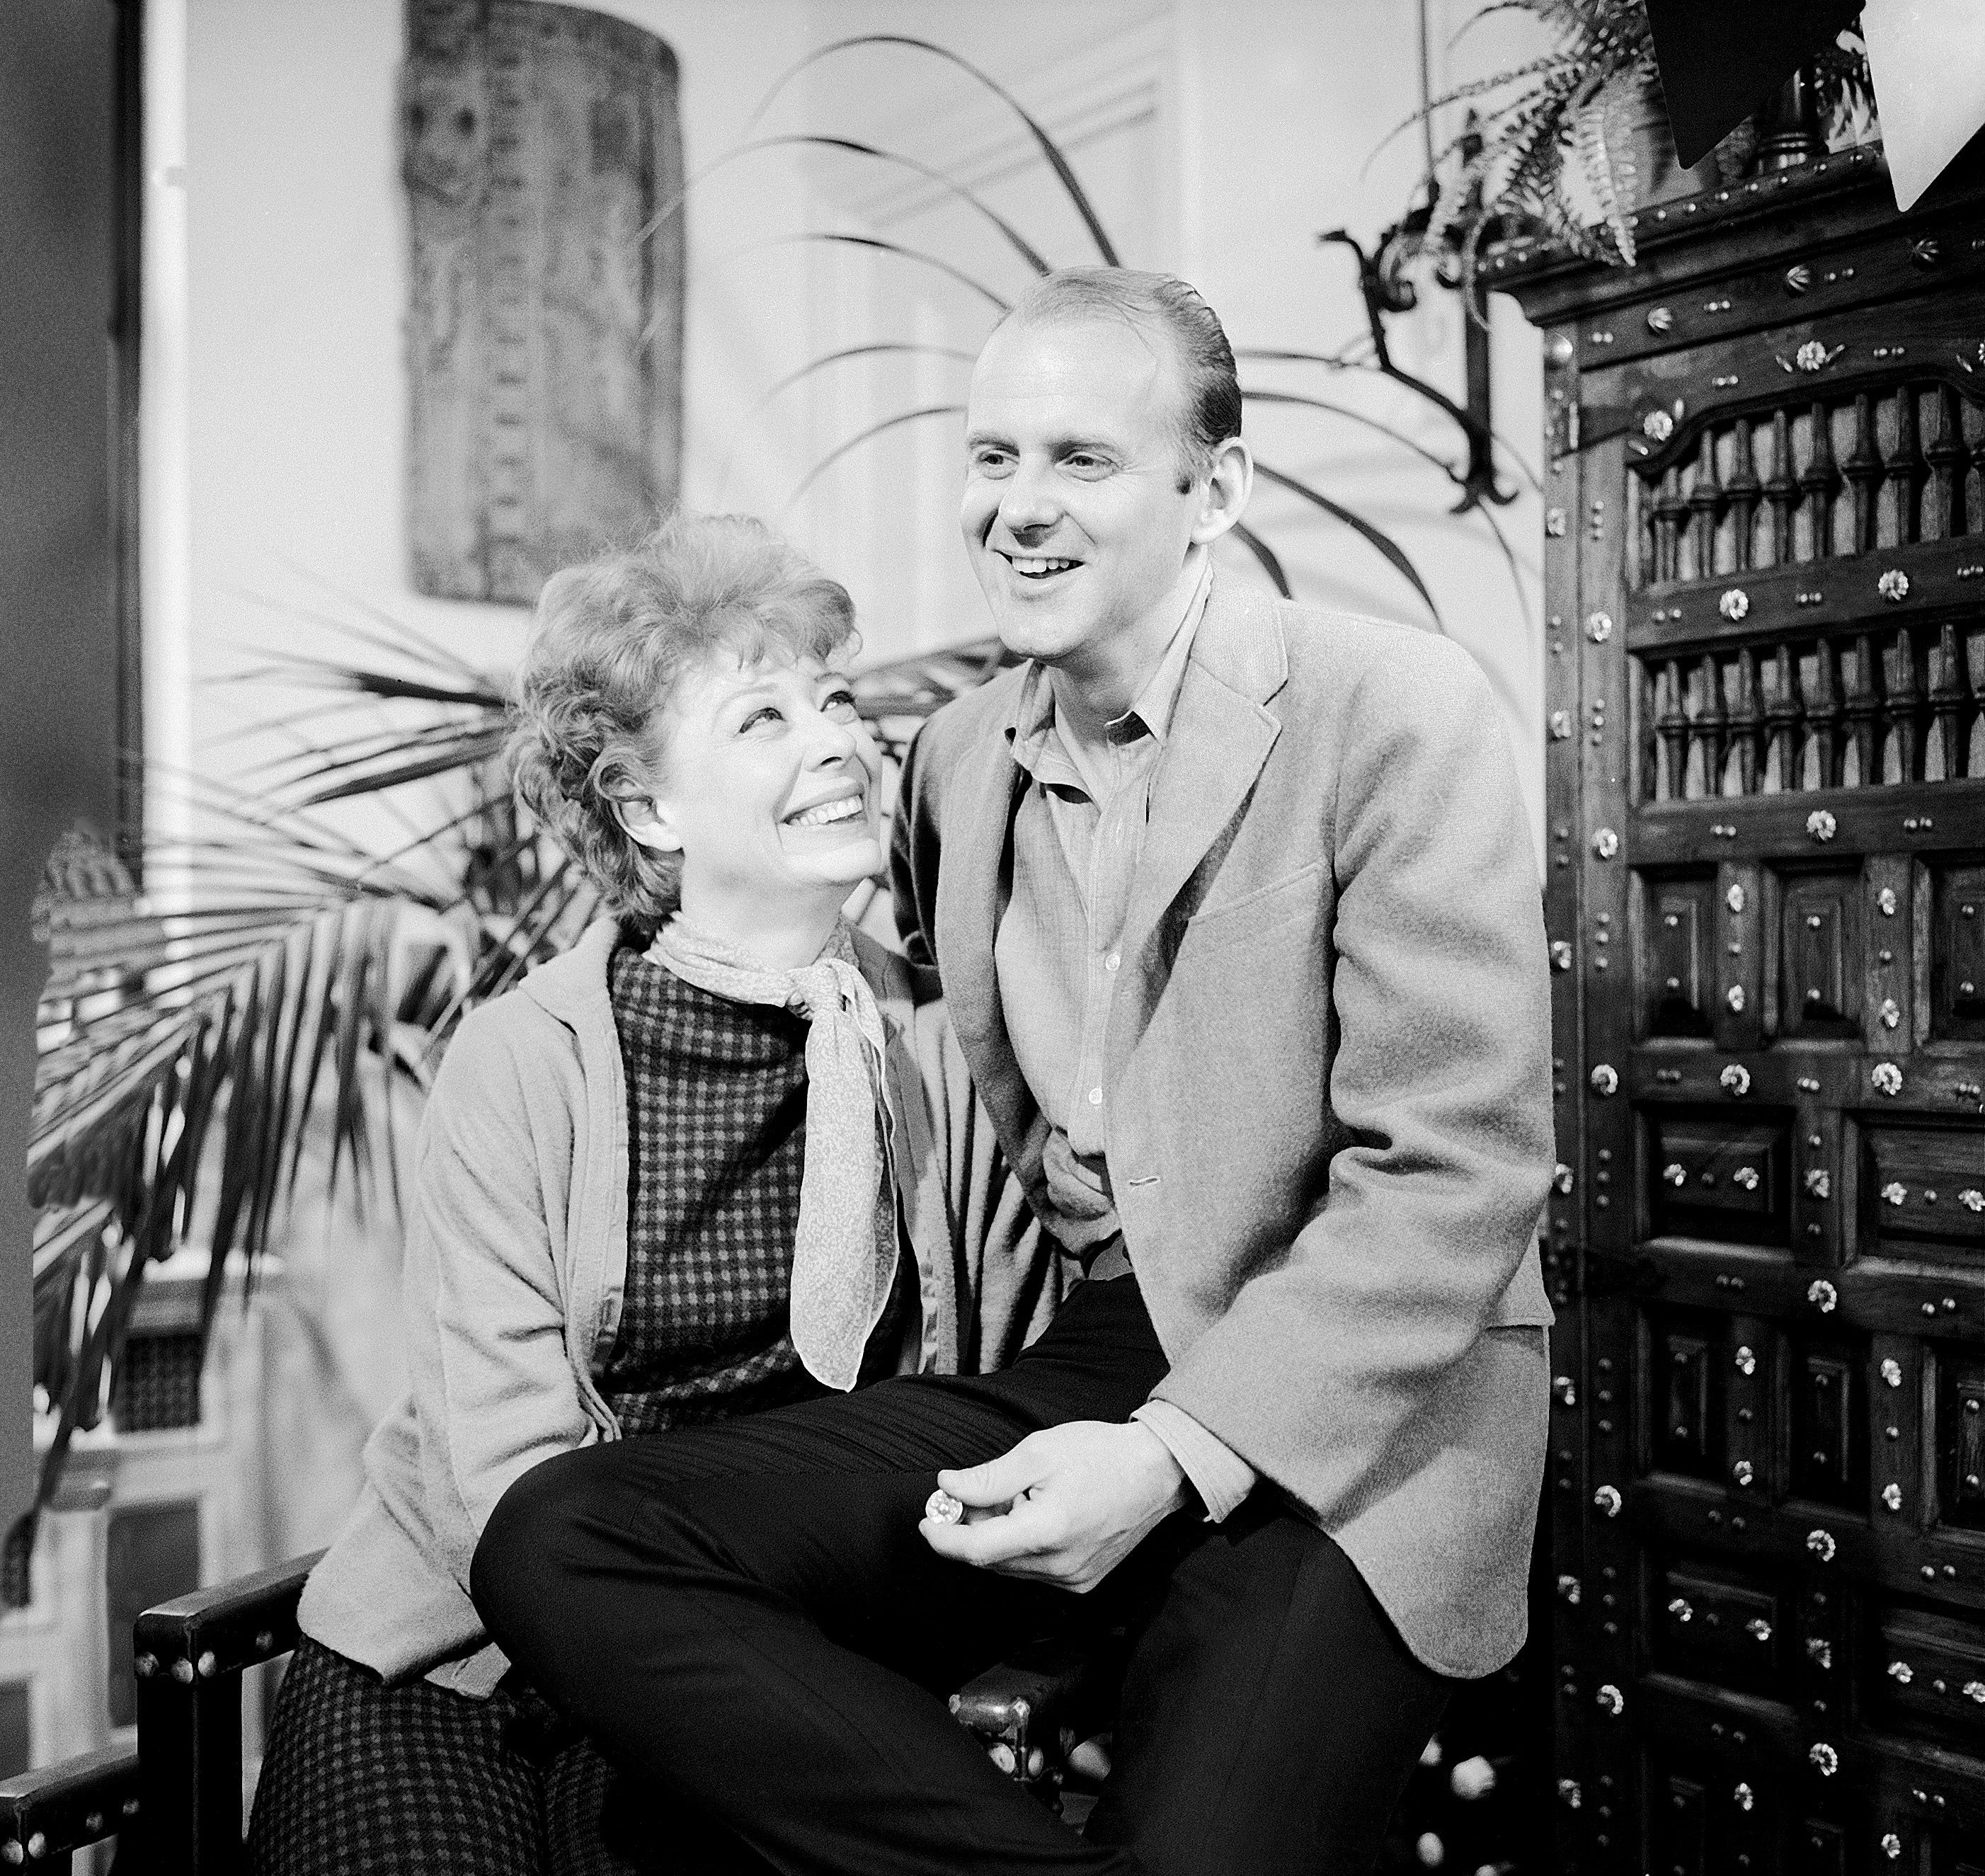 Actress Gwen Verdon (1925 - 2000) and husband, choreographer Bob Fosse (1927 - 1987), in their apartment in New York, New York, March 24, 1966. (Photo by Martha Holmes/The LIFE Images Collection/Getty Images)